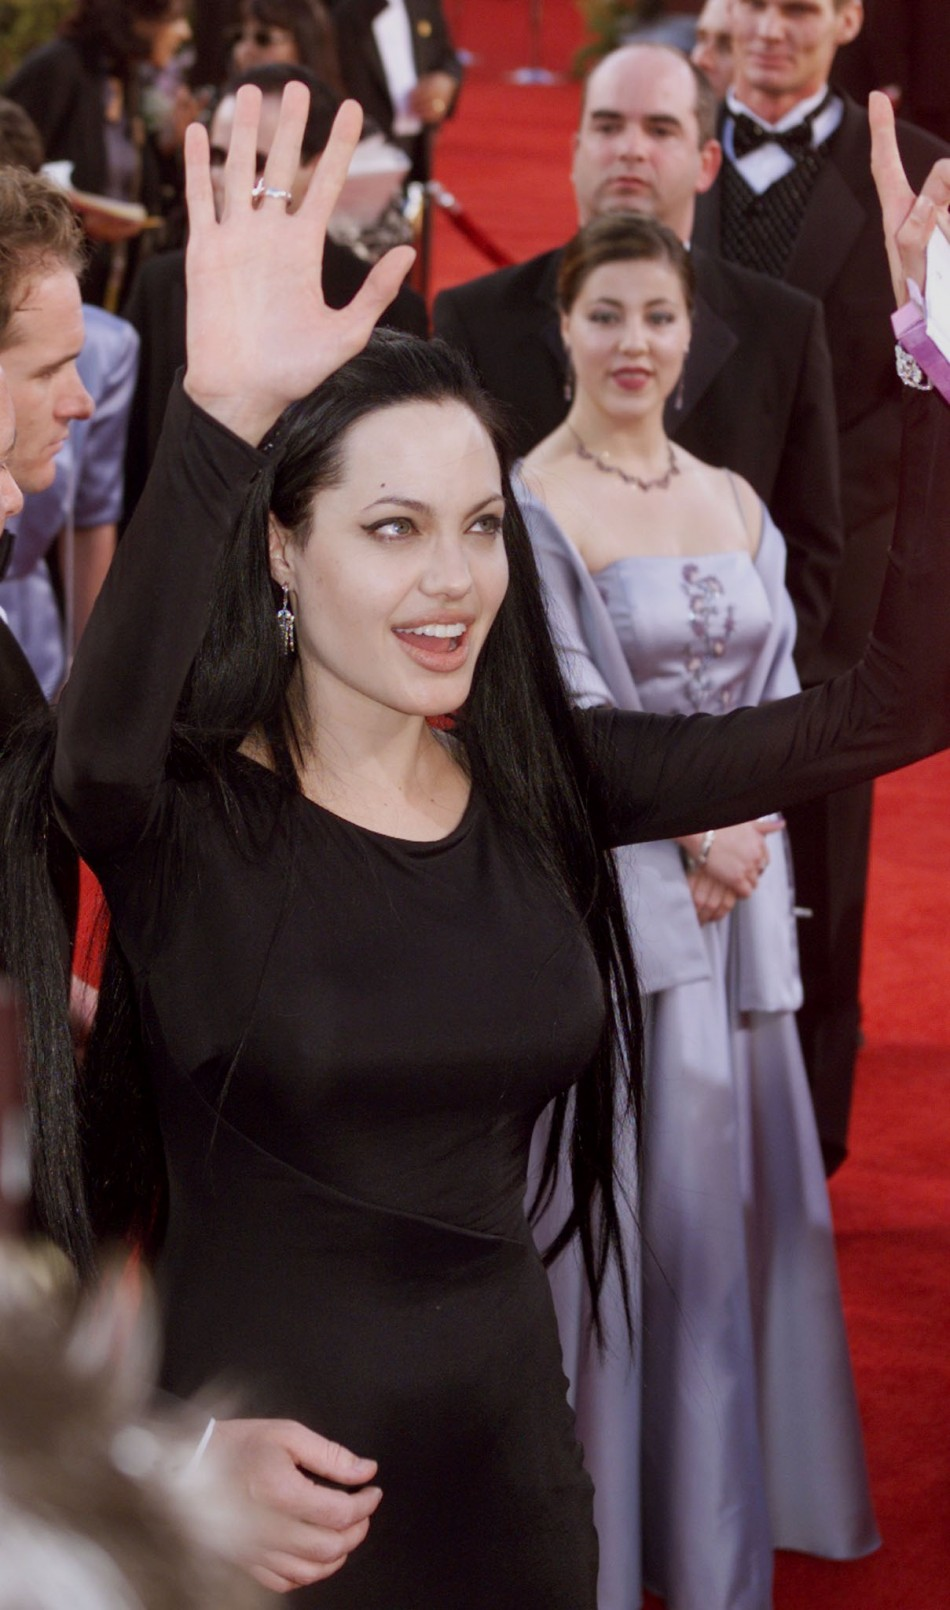 Actress Angelina Jolie waves to the crowd as she arrives at the 72nd Annual Academy Awards at the Shrine Auditorium in Los Angeles, March 26.